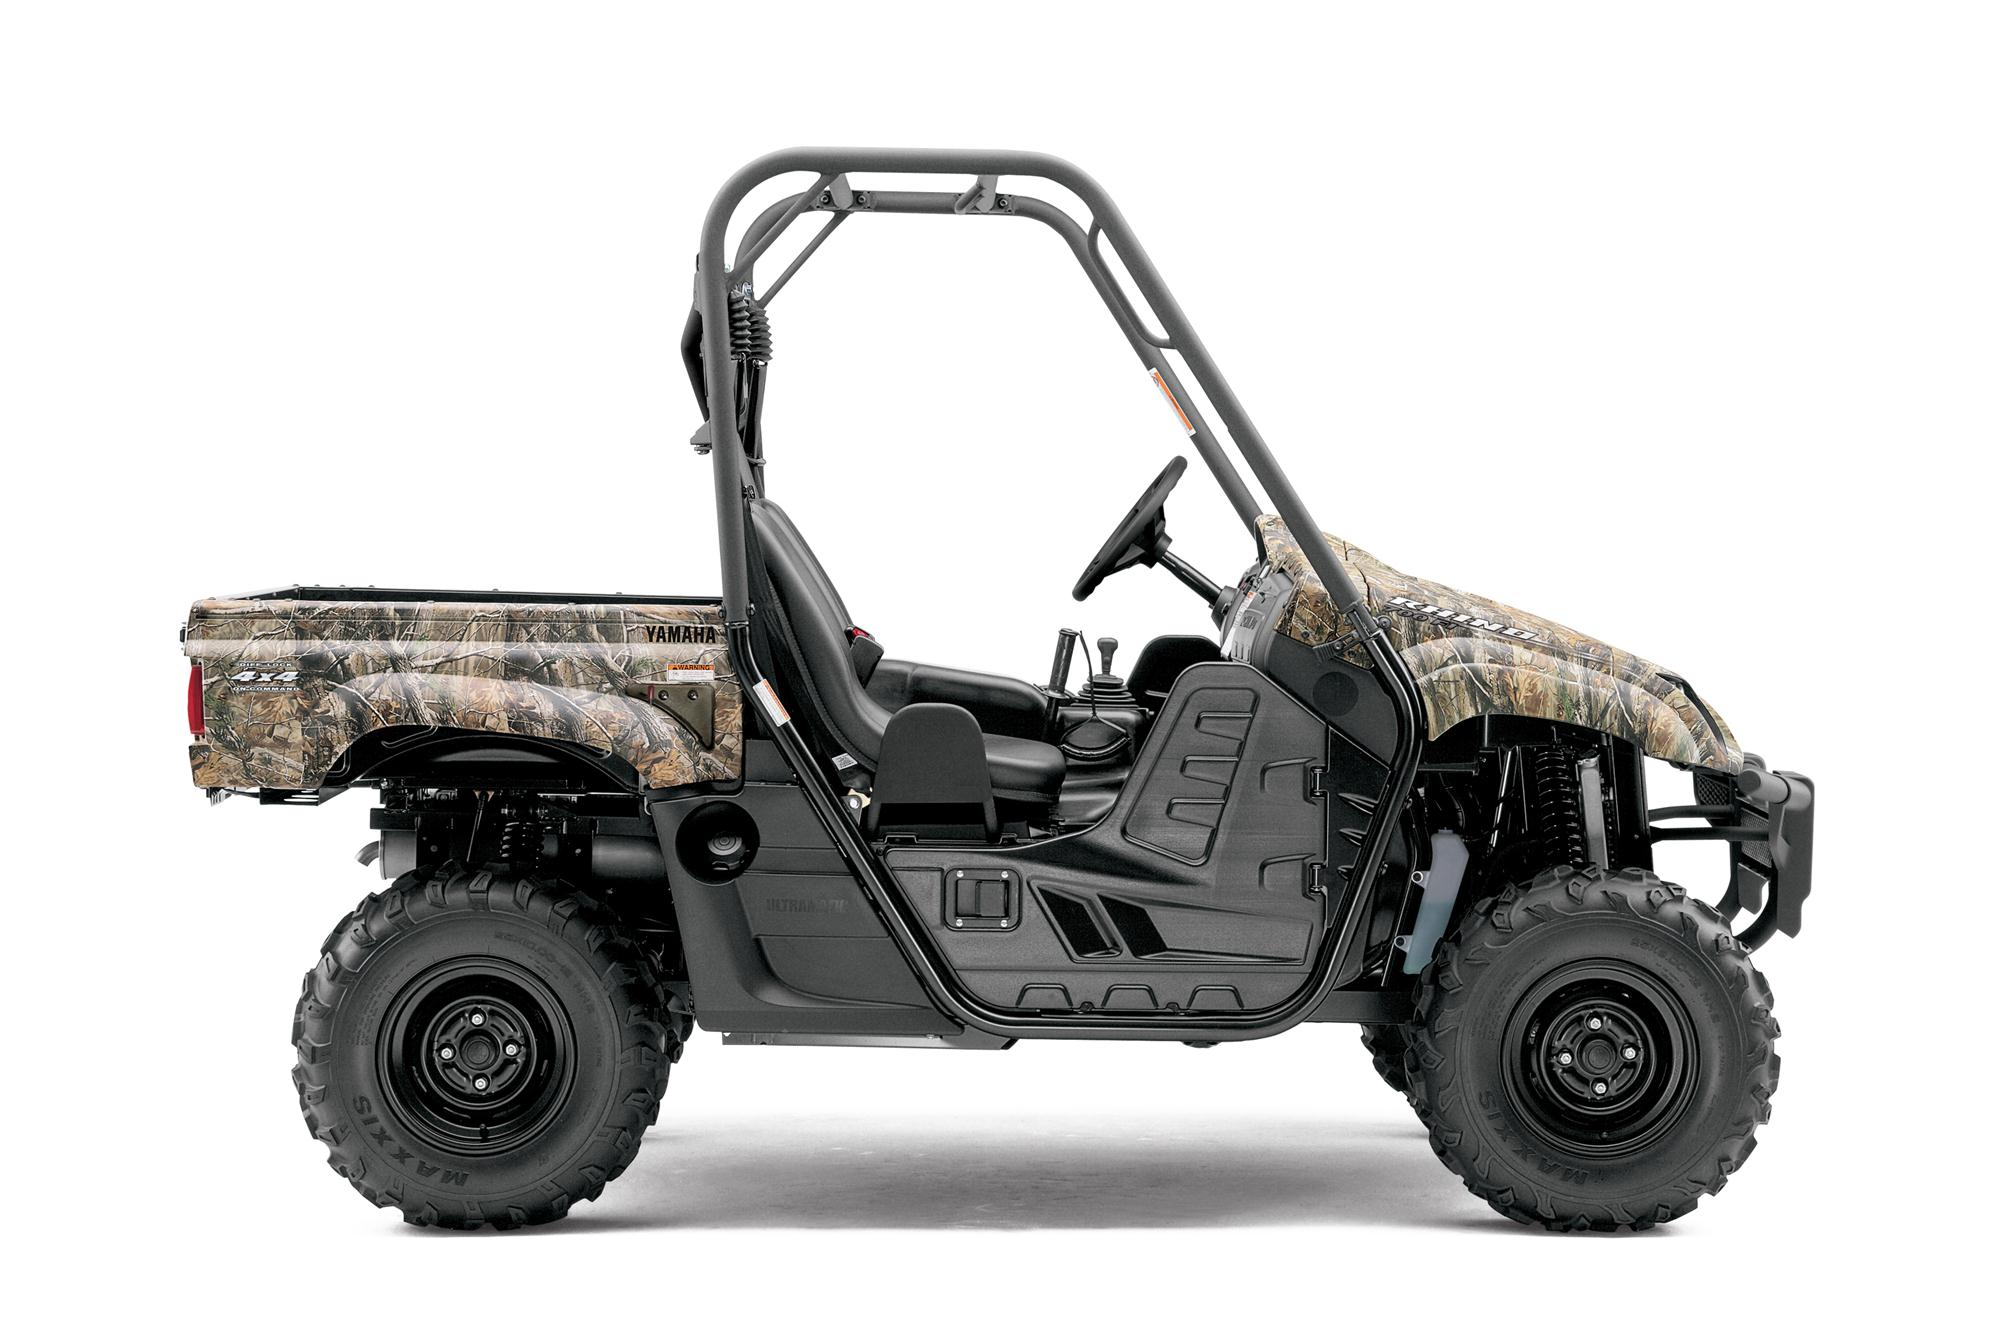 yamaha rhino 700 fi auto 4x4 specs 2012 2013 autoevolution. Black Bedroom Furniture Sets. Home Design Ideas